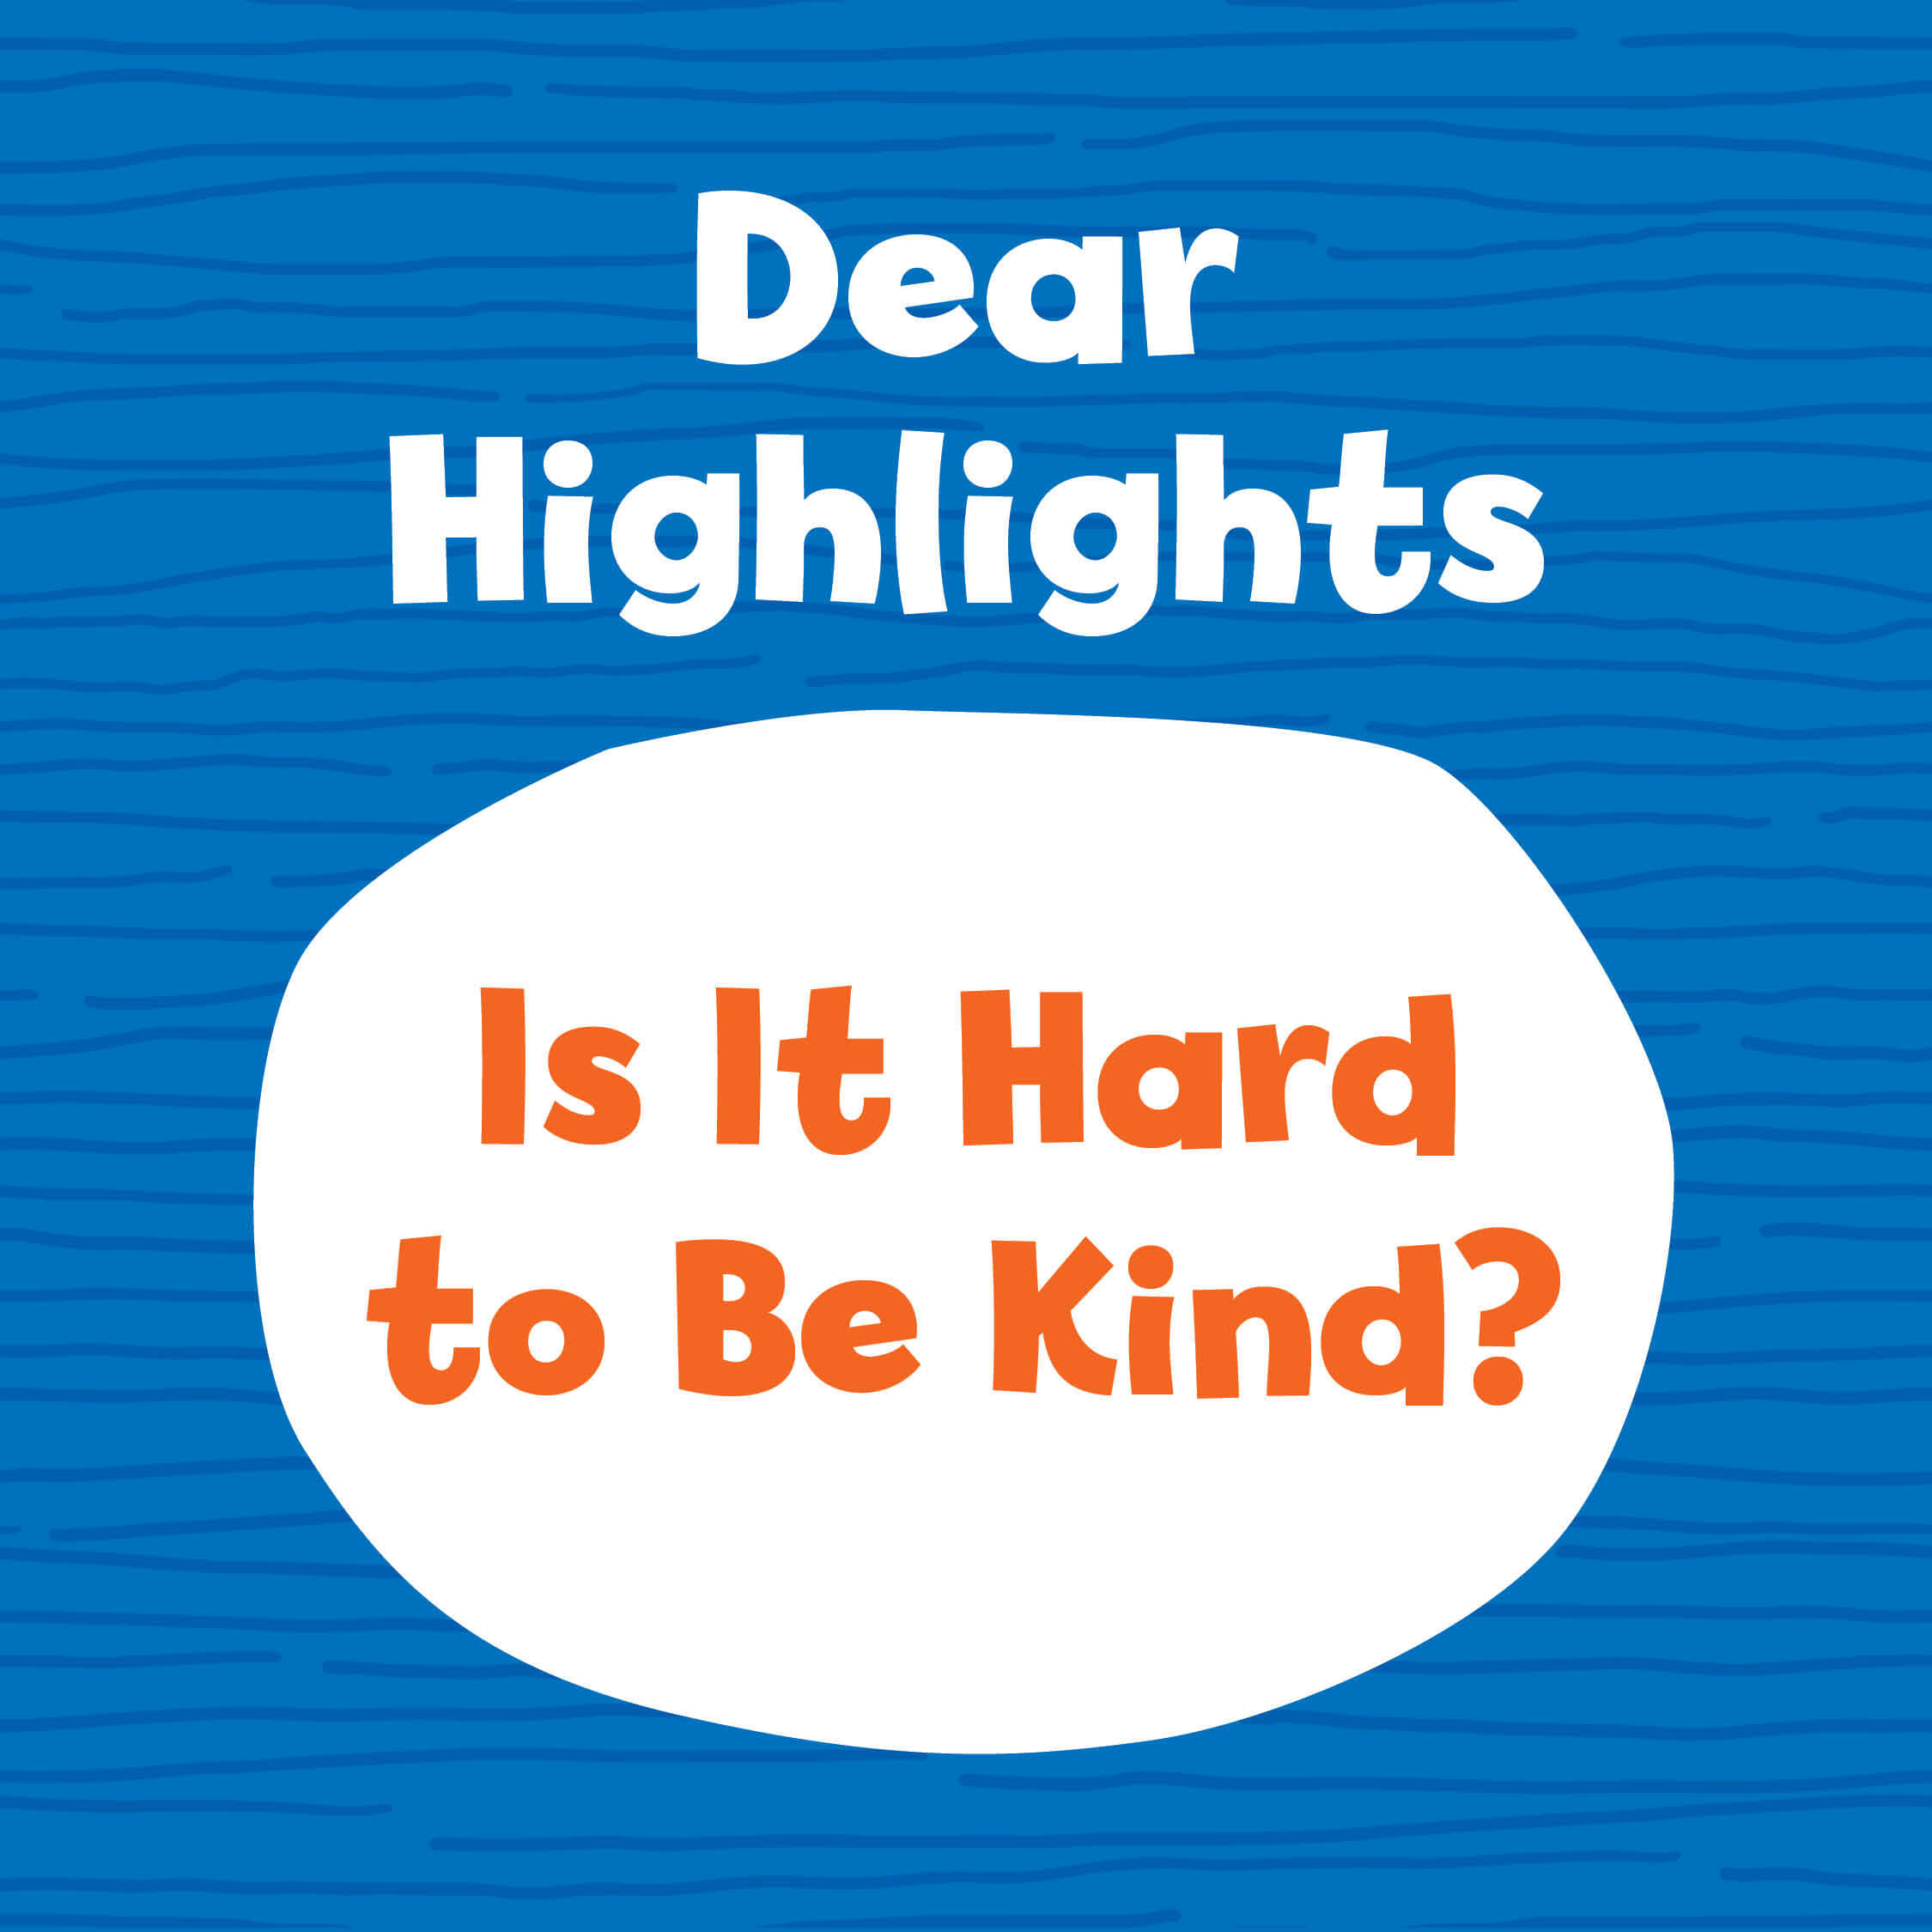 Dear Highlights: Is It Hard to Be Kind?